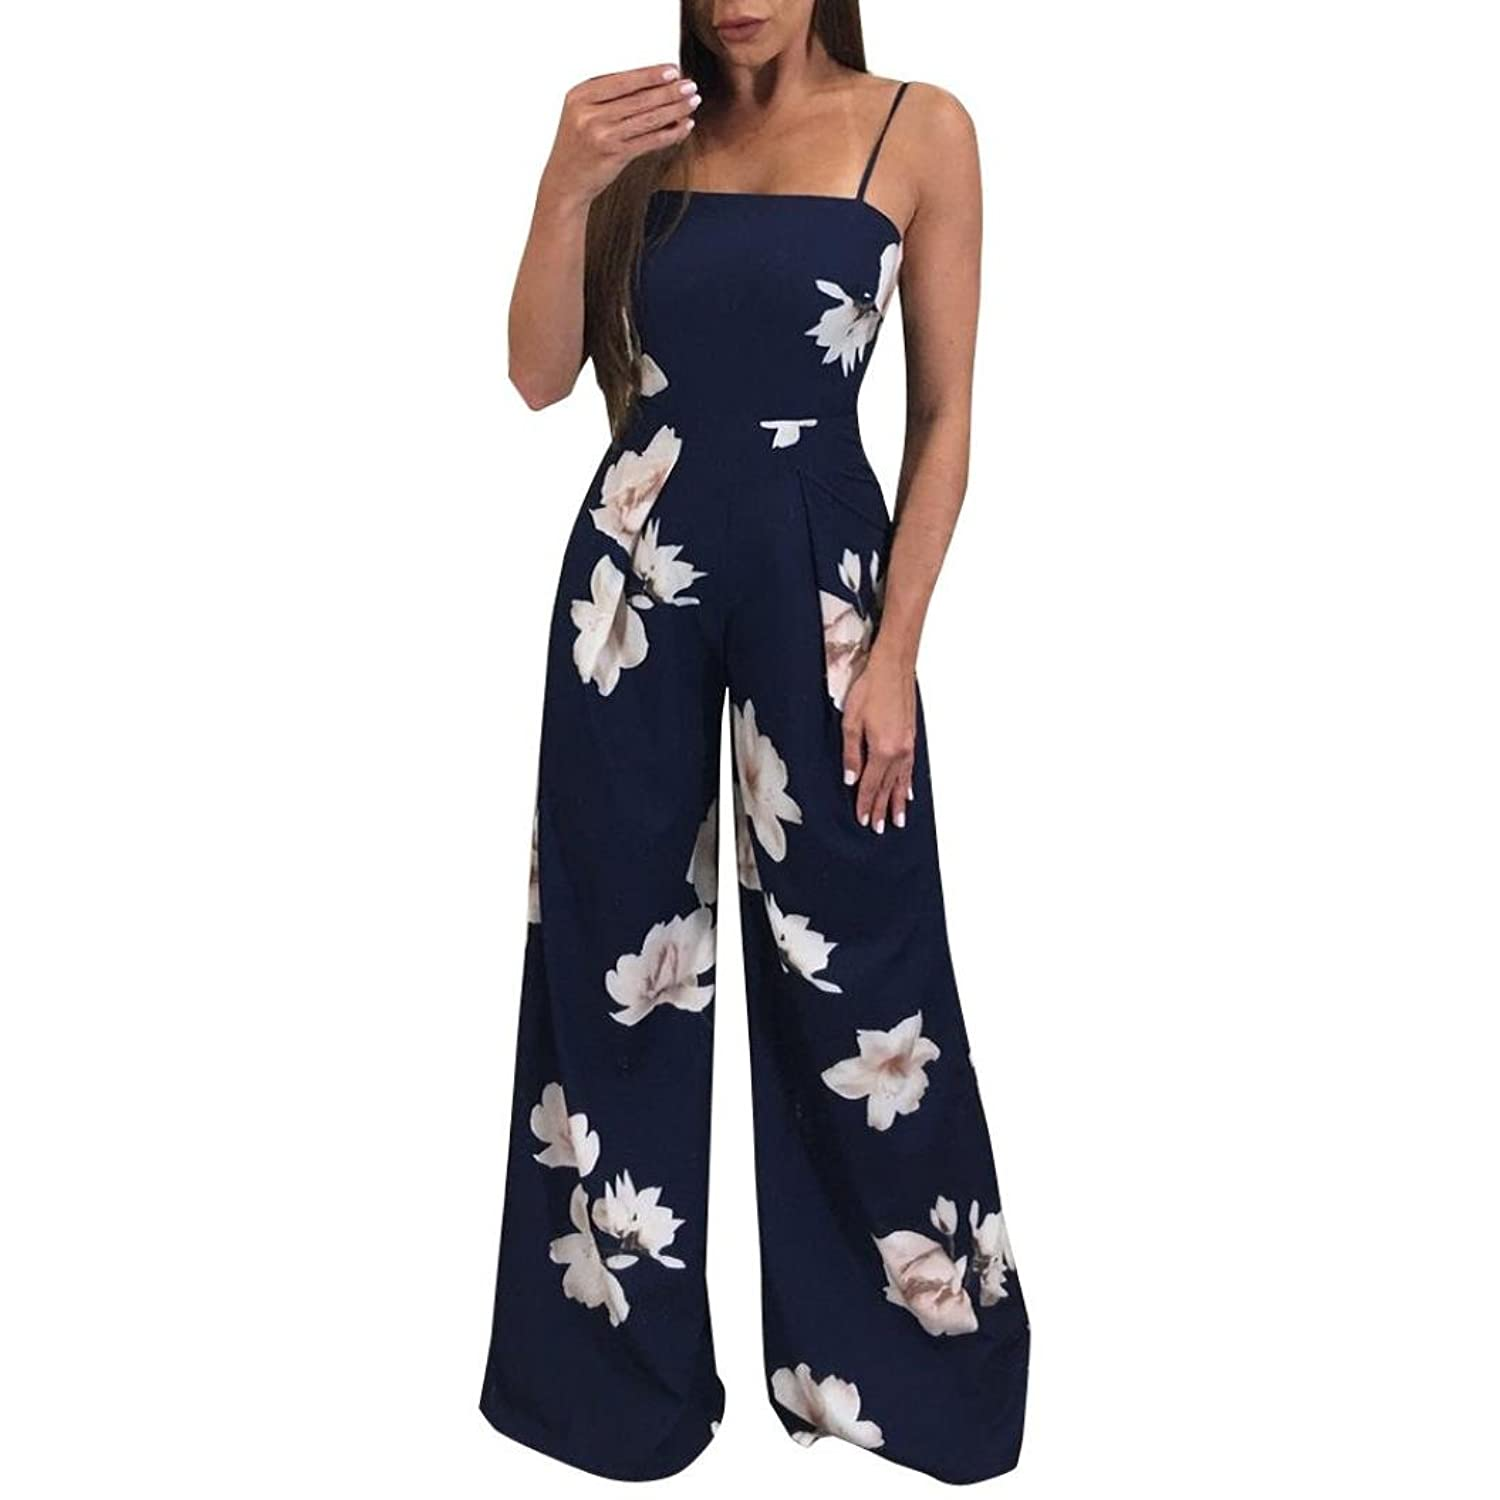 83cfbb47c814 Sexy Design of Cold Shoulder and Lace up Bandage Long Jumpsuit Make You  More Chic and Charming. women rompers women jumpsuits sexy women piece  pants rompers ...